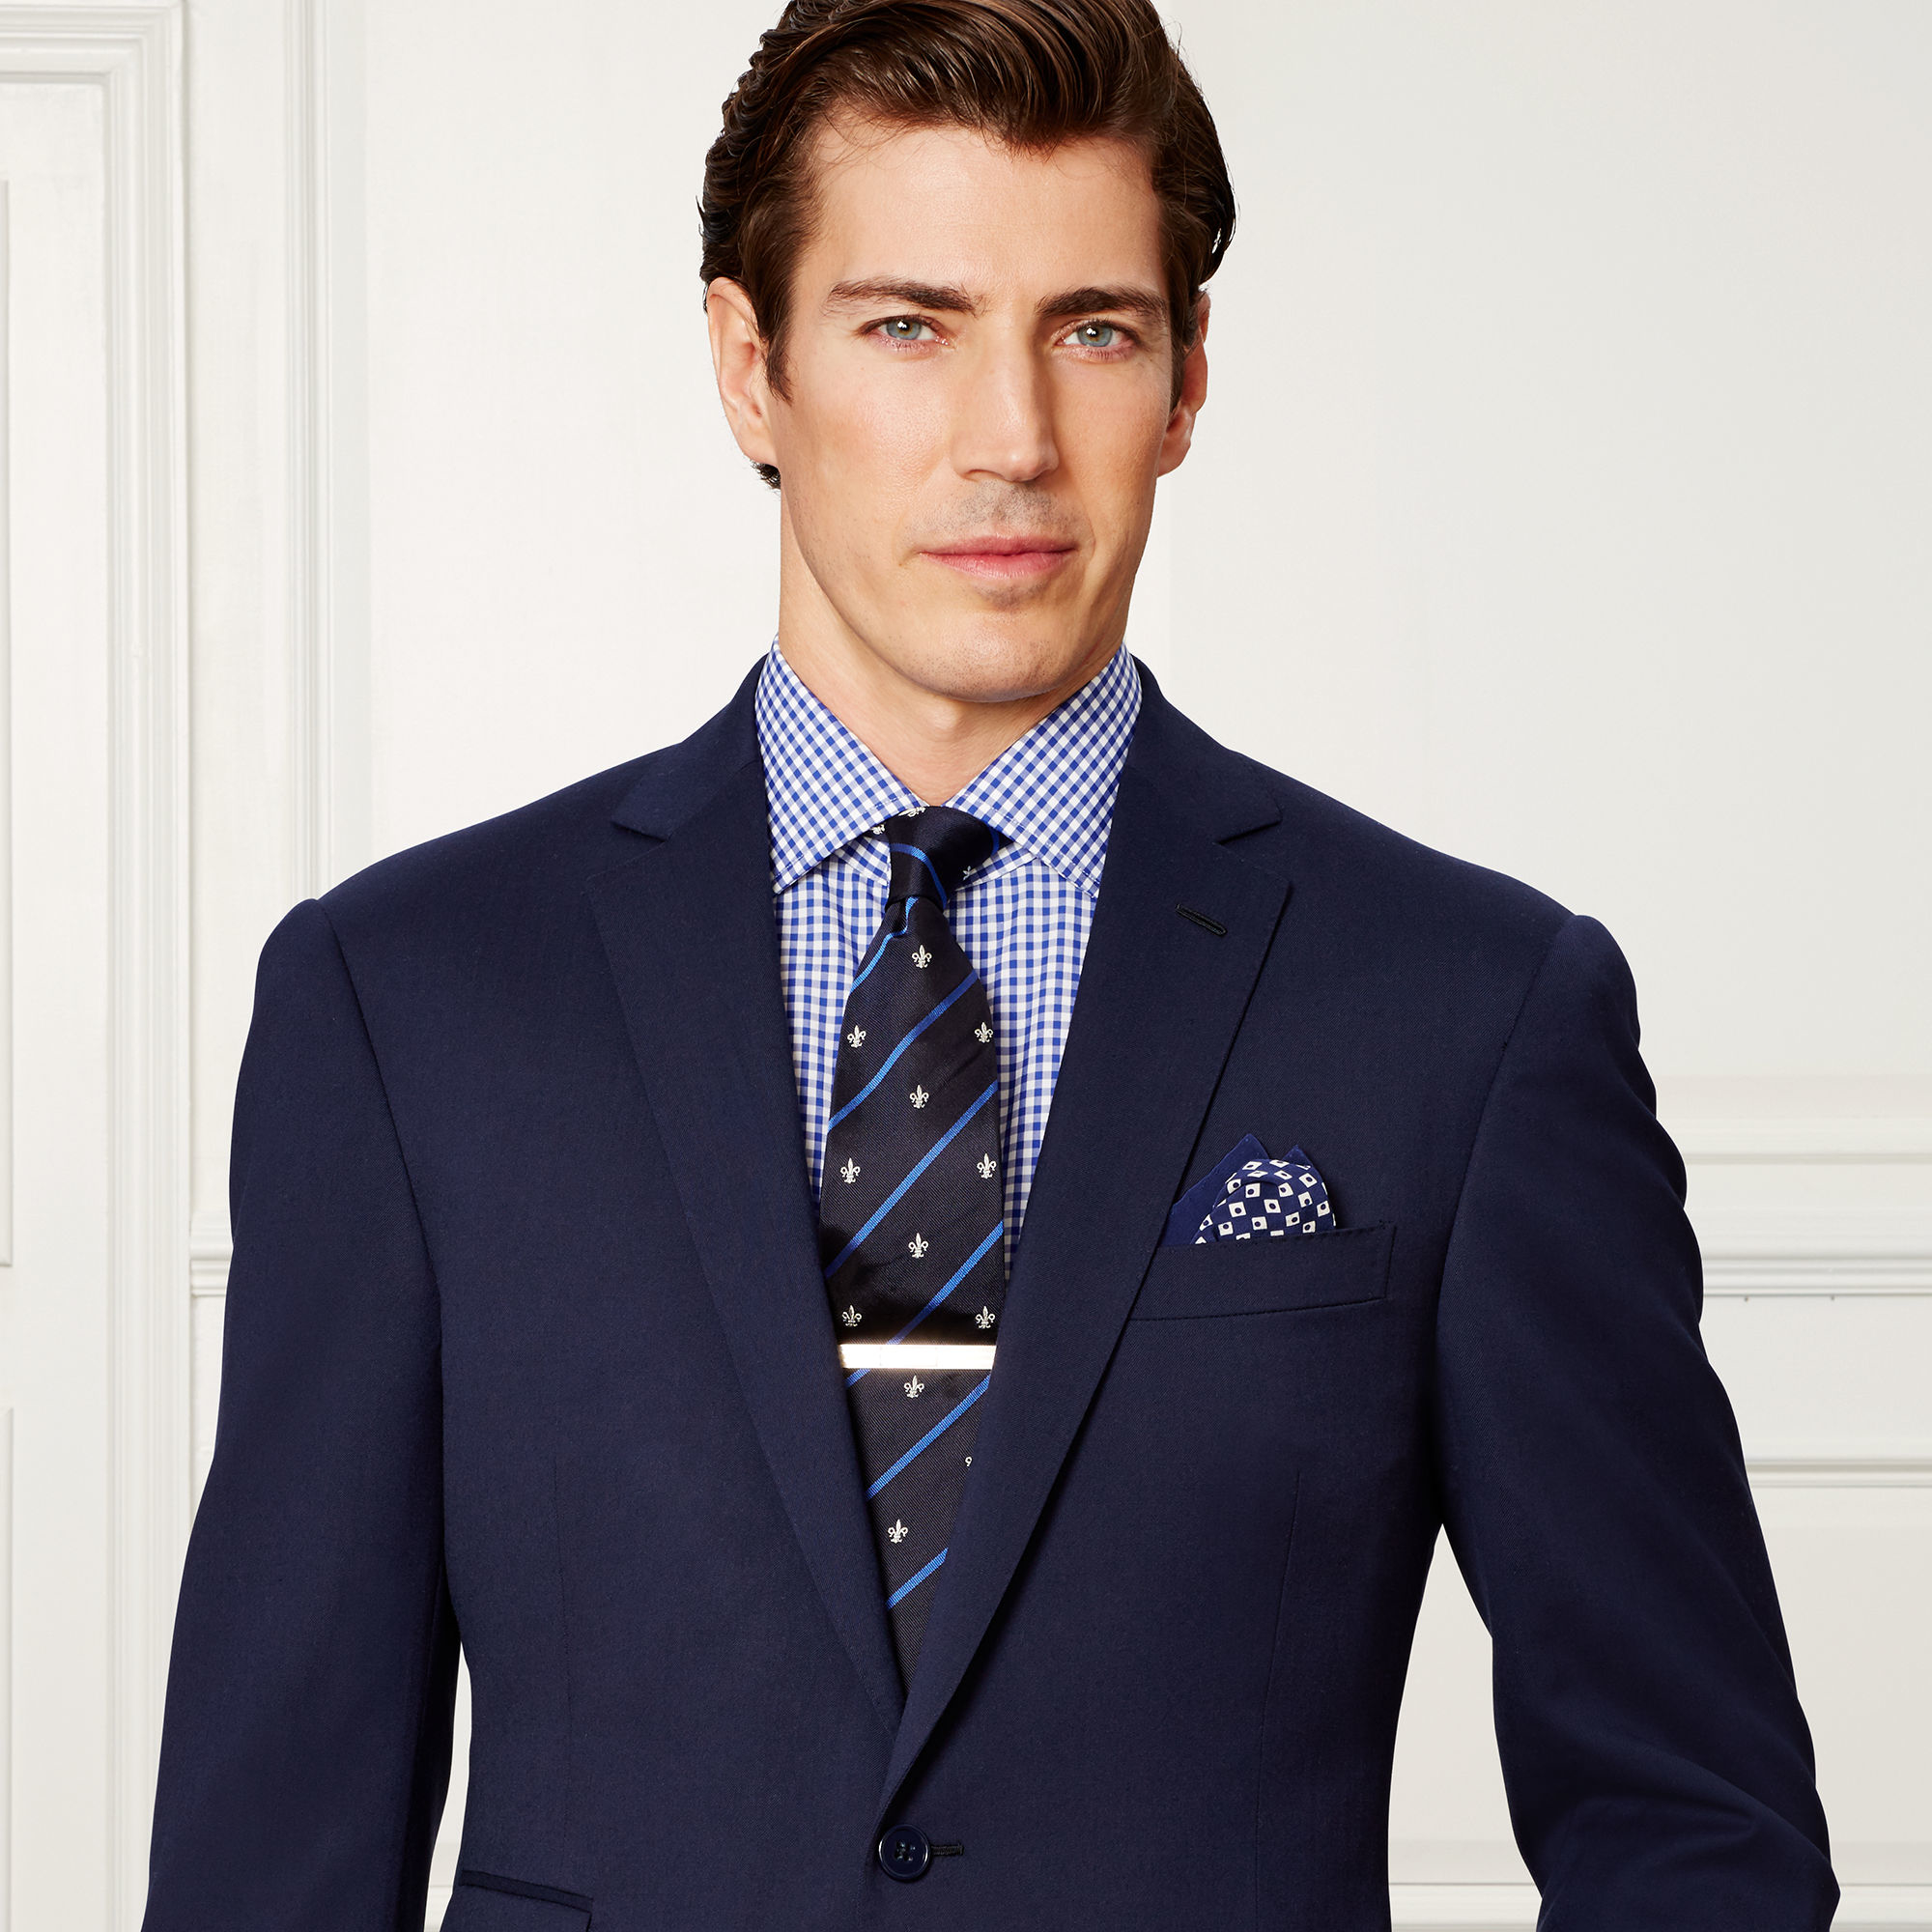 Lyst - Ralph lauren purple label Drake Wool Sport Coat in Blue for Men